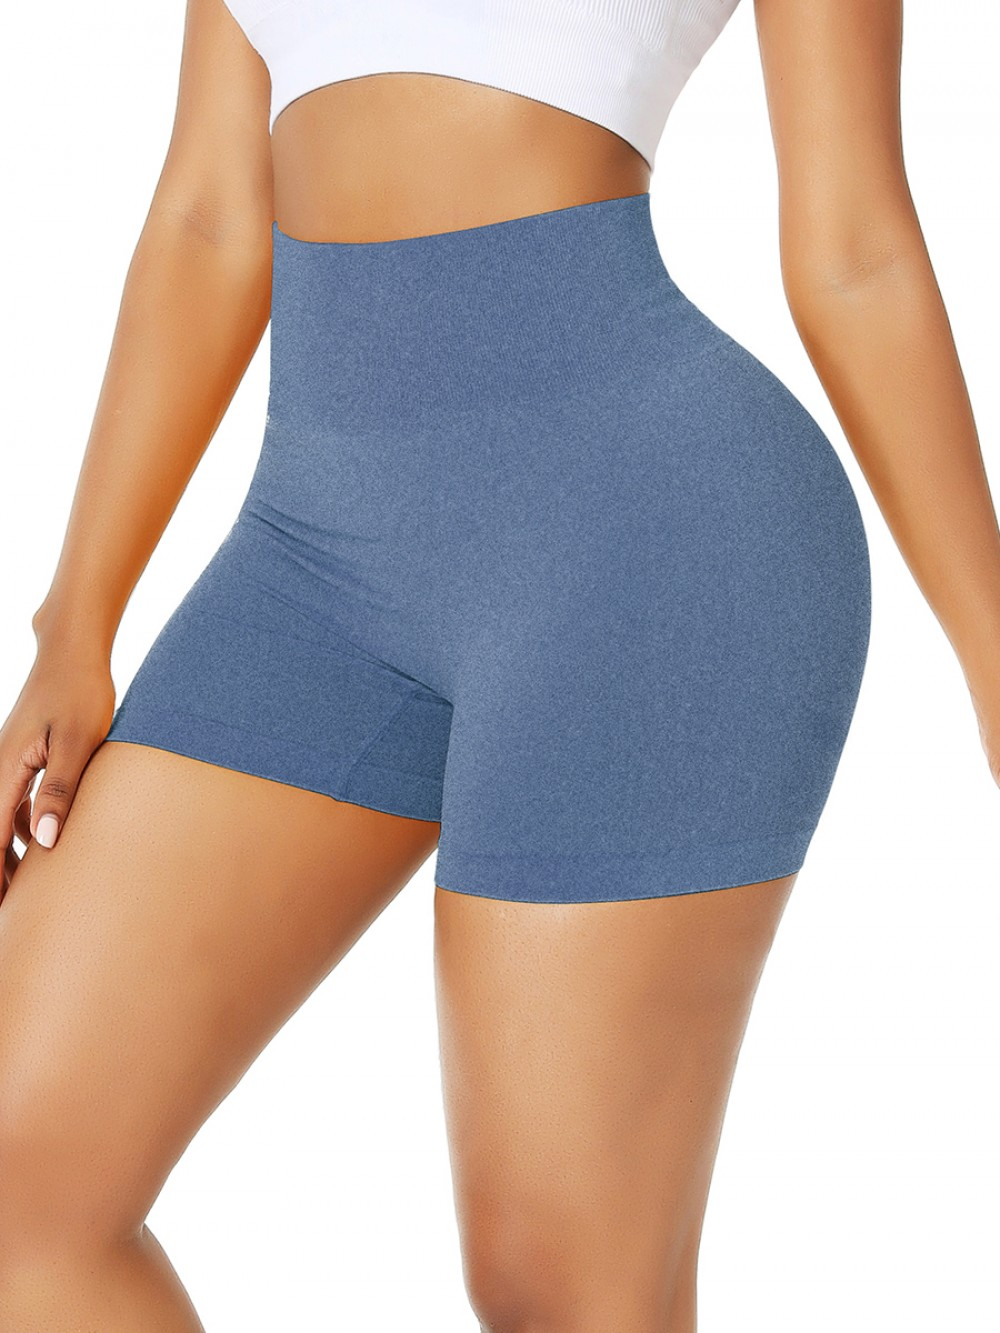 Blue Slim Sports Shorts Thigh Length Solid Color Workout Apparel